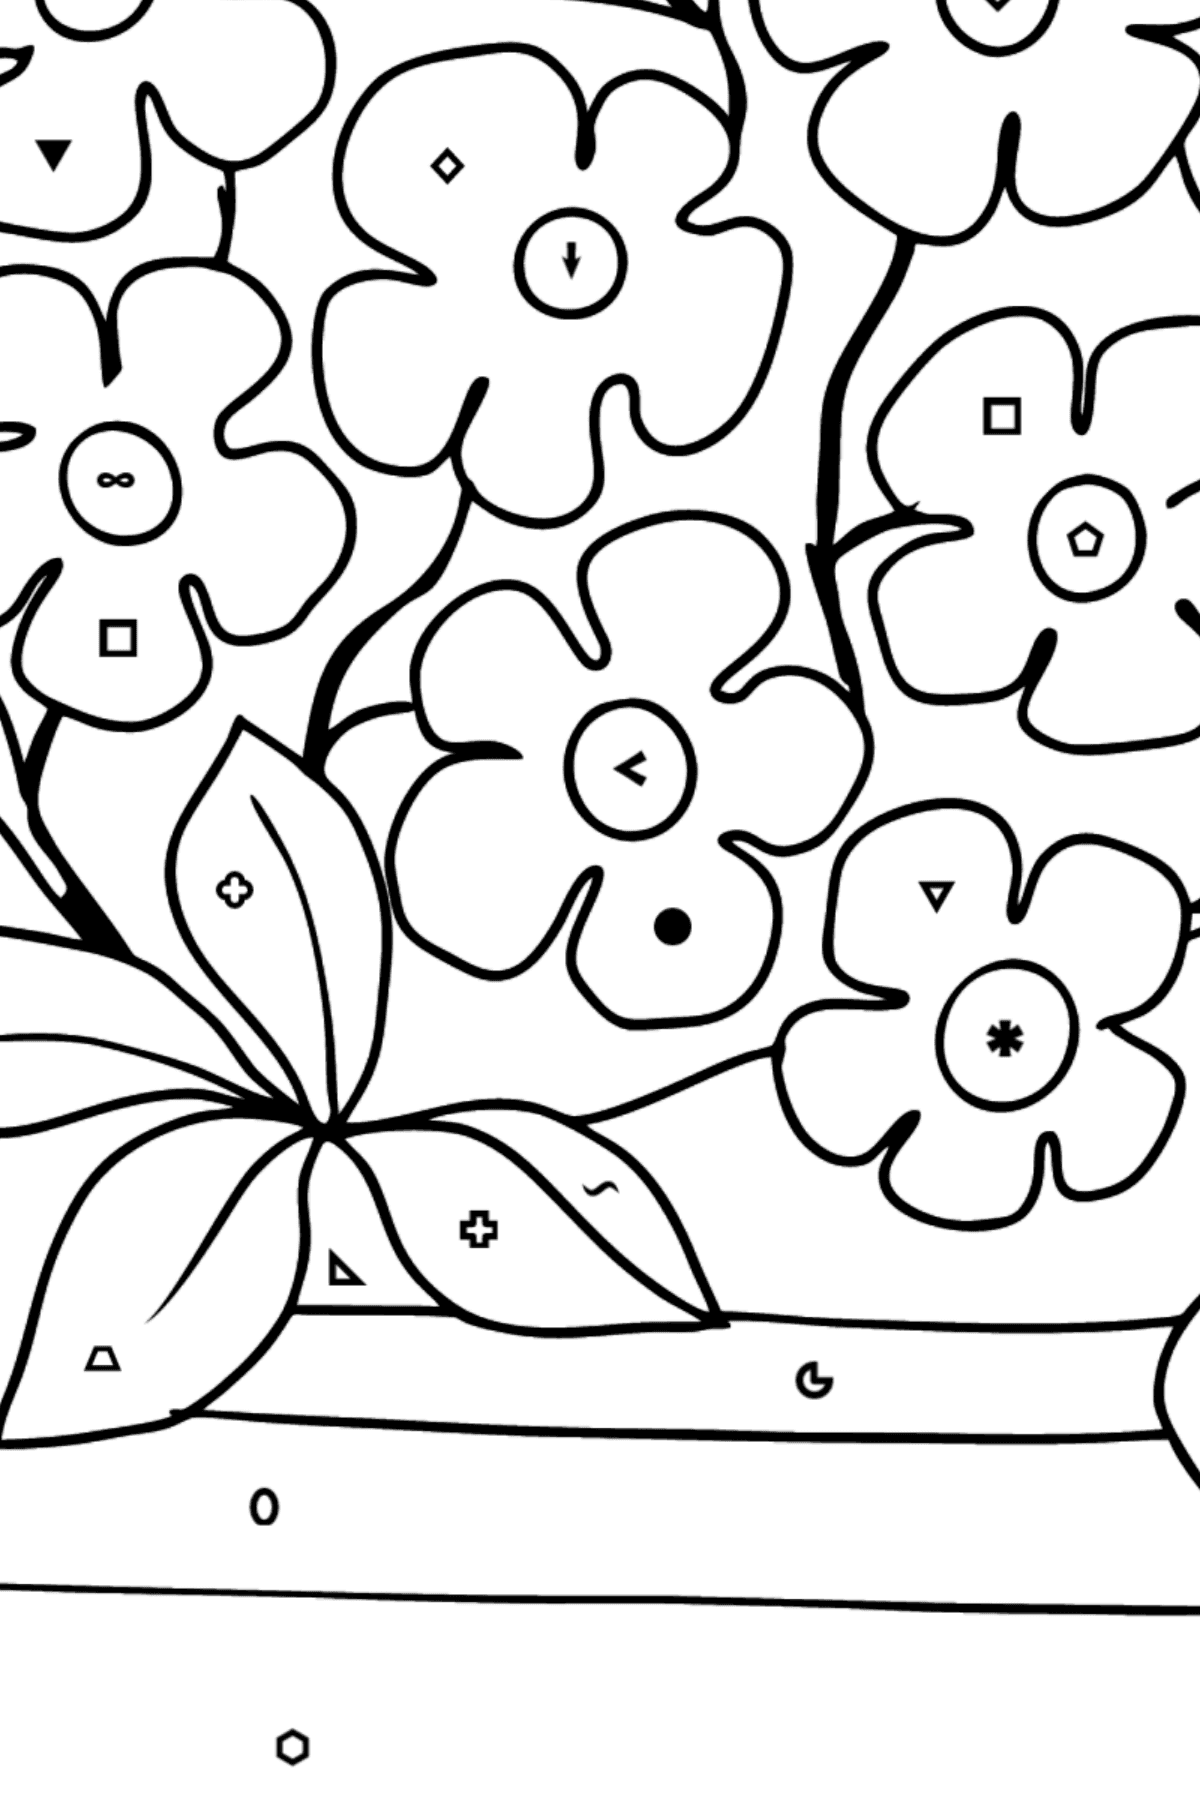 Flower Coloring Page - Forget me nots - Coloring by Symbols and Geometric Shapes for Kids